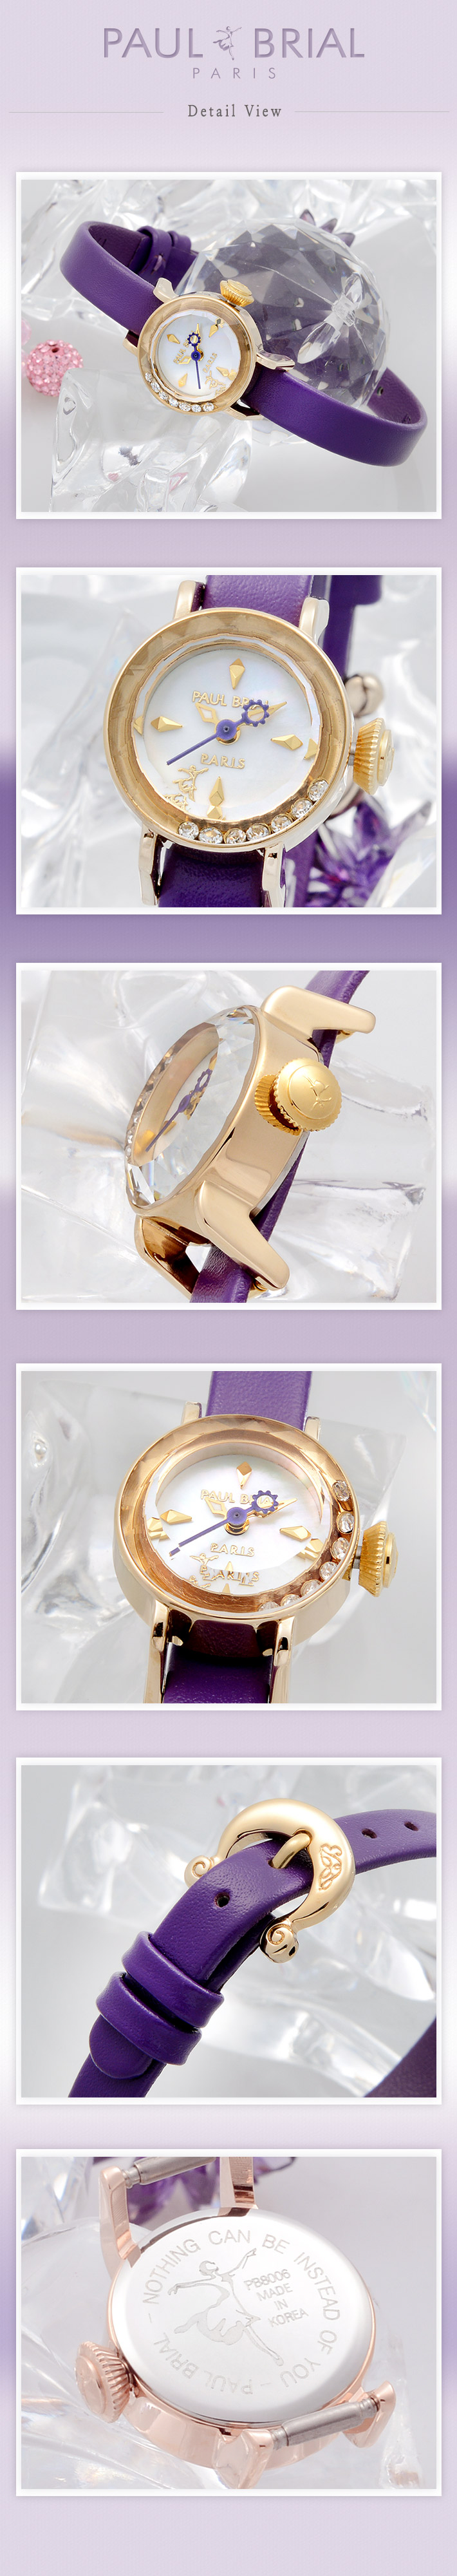 [ PAUL BRIAL ] KOREA MADE HIGH QUALITY LADIES GOLD PURPLE LEATHER BAND WATCH PB8006GD/Violet AJACCIO Ⅱ